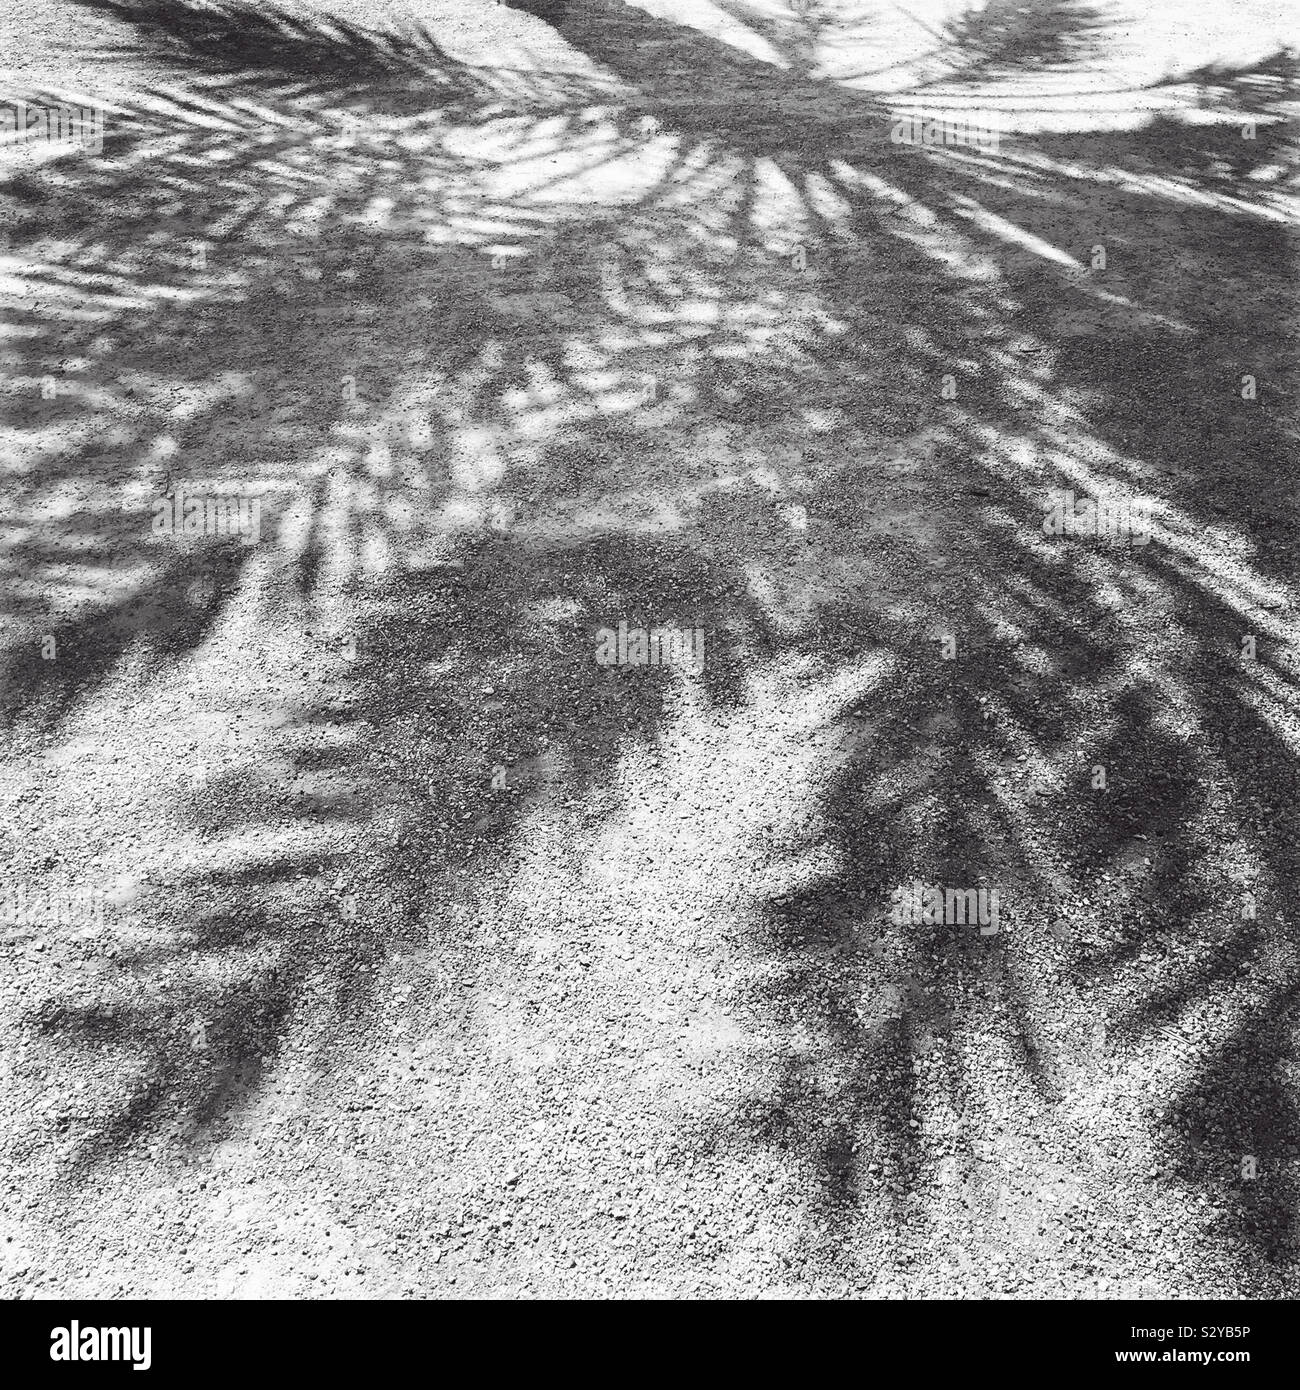 Shadow of the long leaves and branches of a palm tree on the rough surfaced cement of a parking lot. Stock Photo